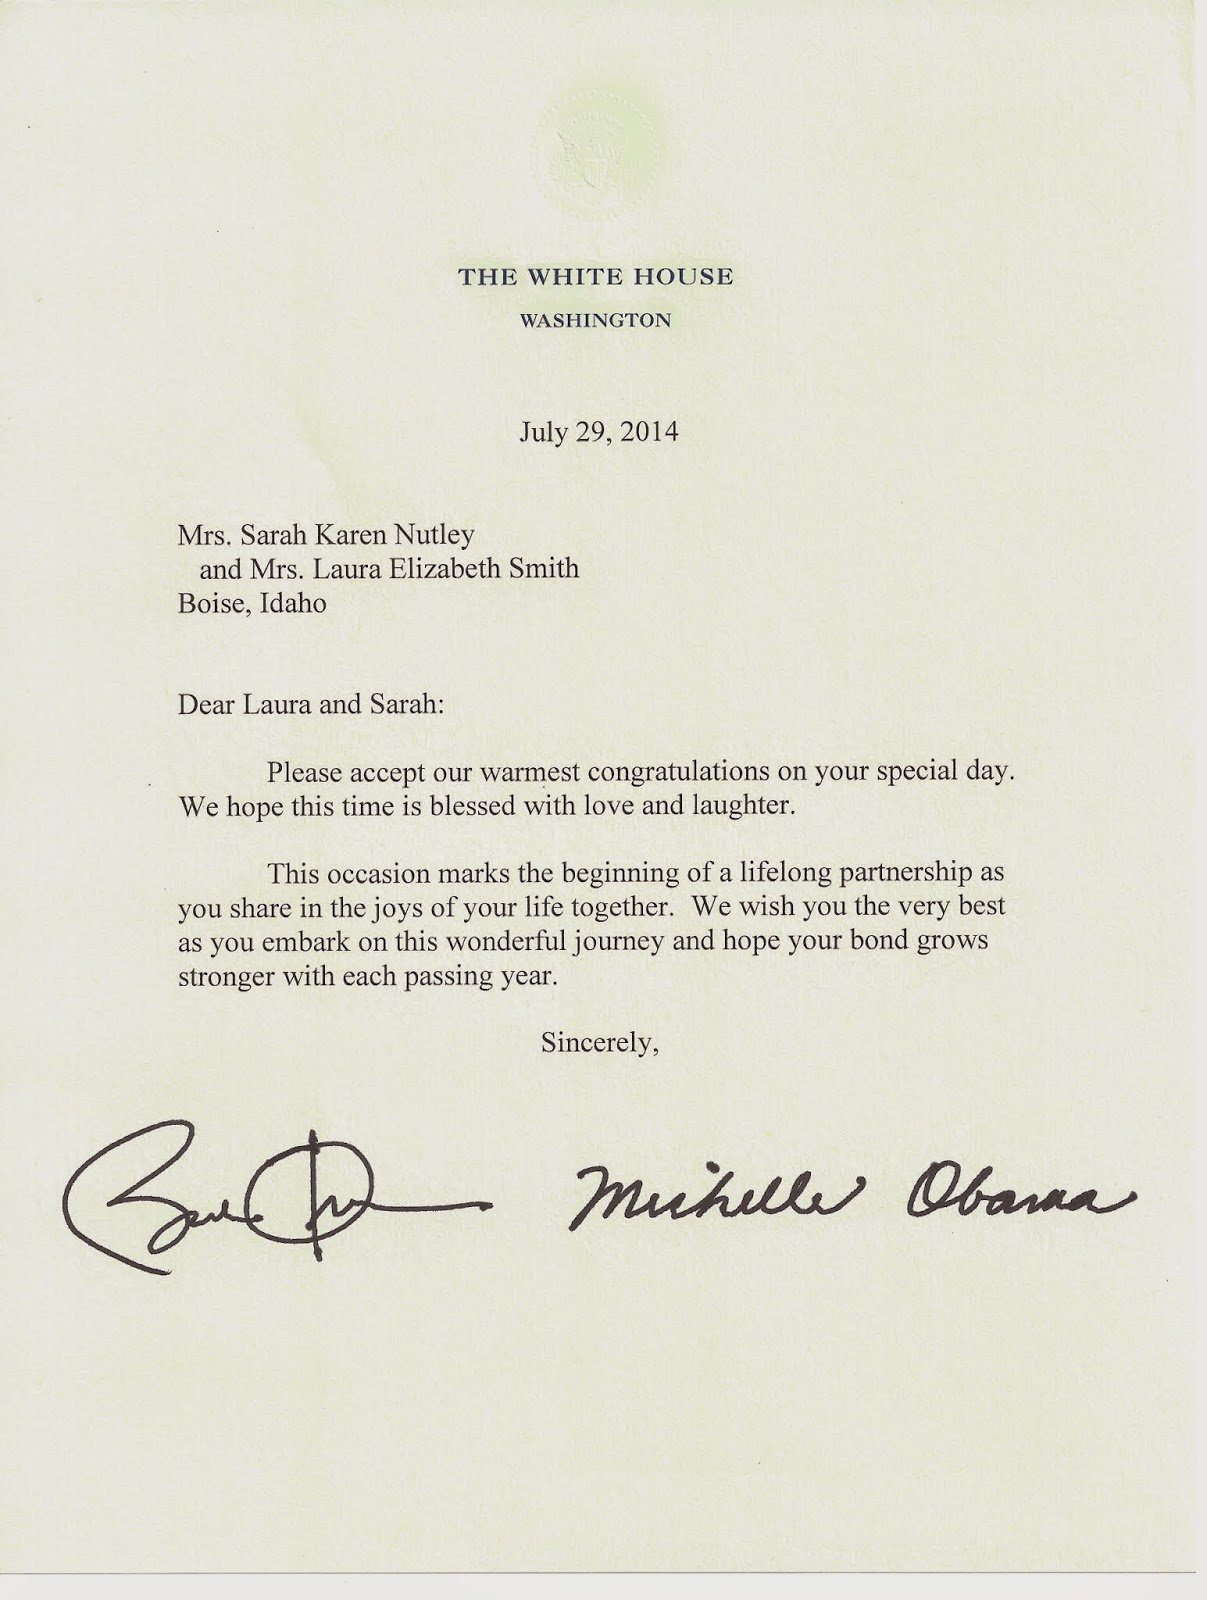 A Sample Thank You Letter You Can Steal From Pamela Grow Sarah Laura The Obamas Sent Us A Letter